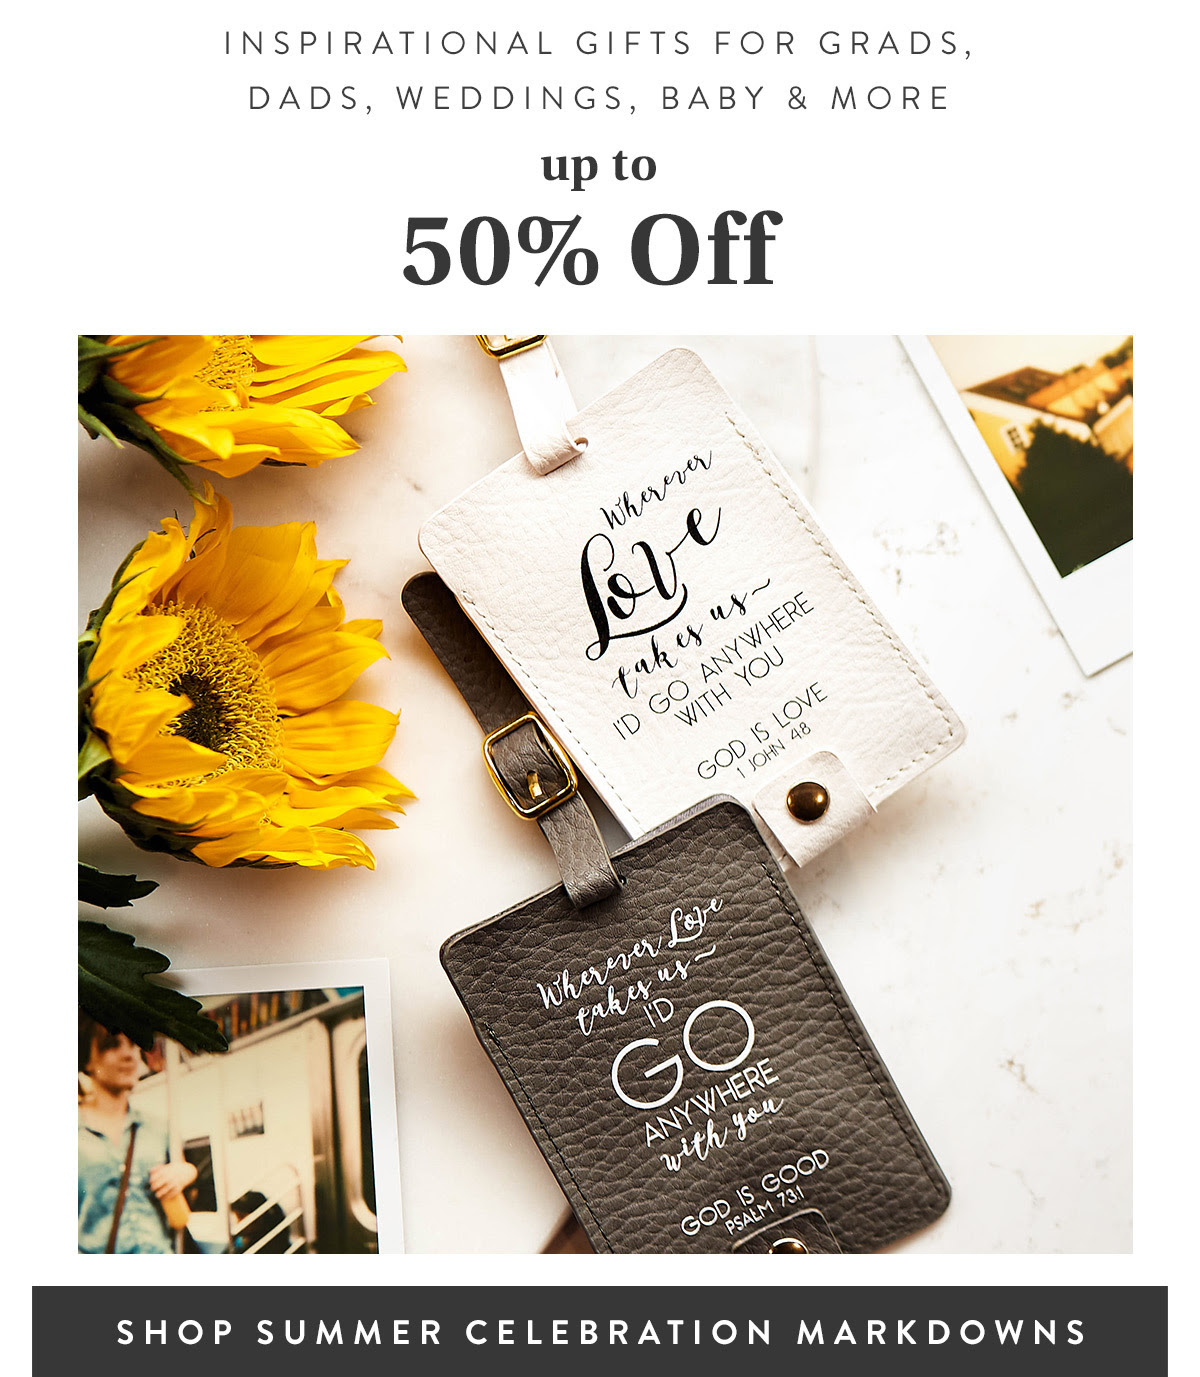 Inspirational Gifts for Grads, Dads, Weddings, Baby & more up to 50% off